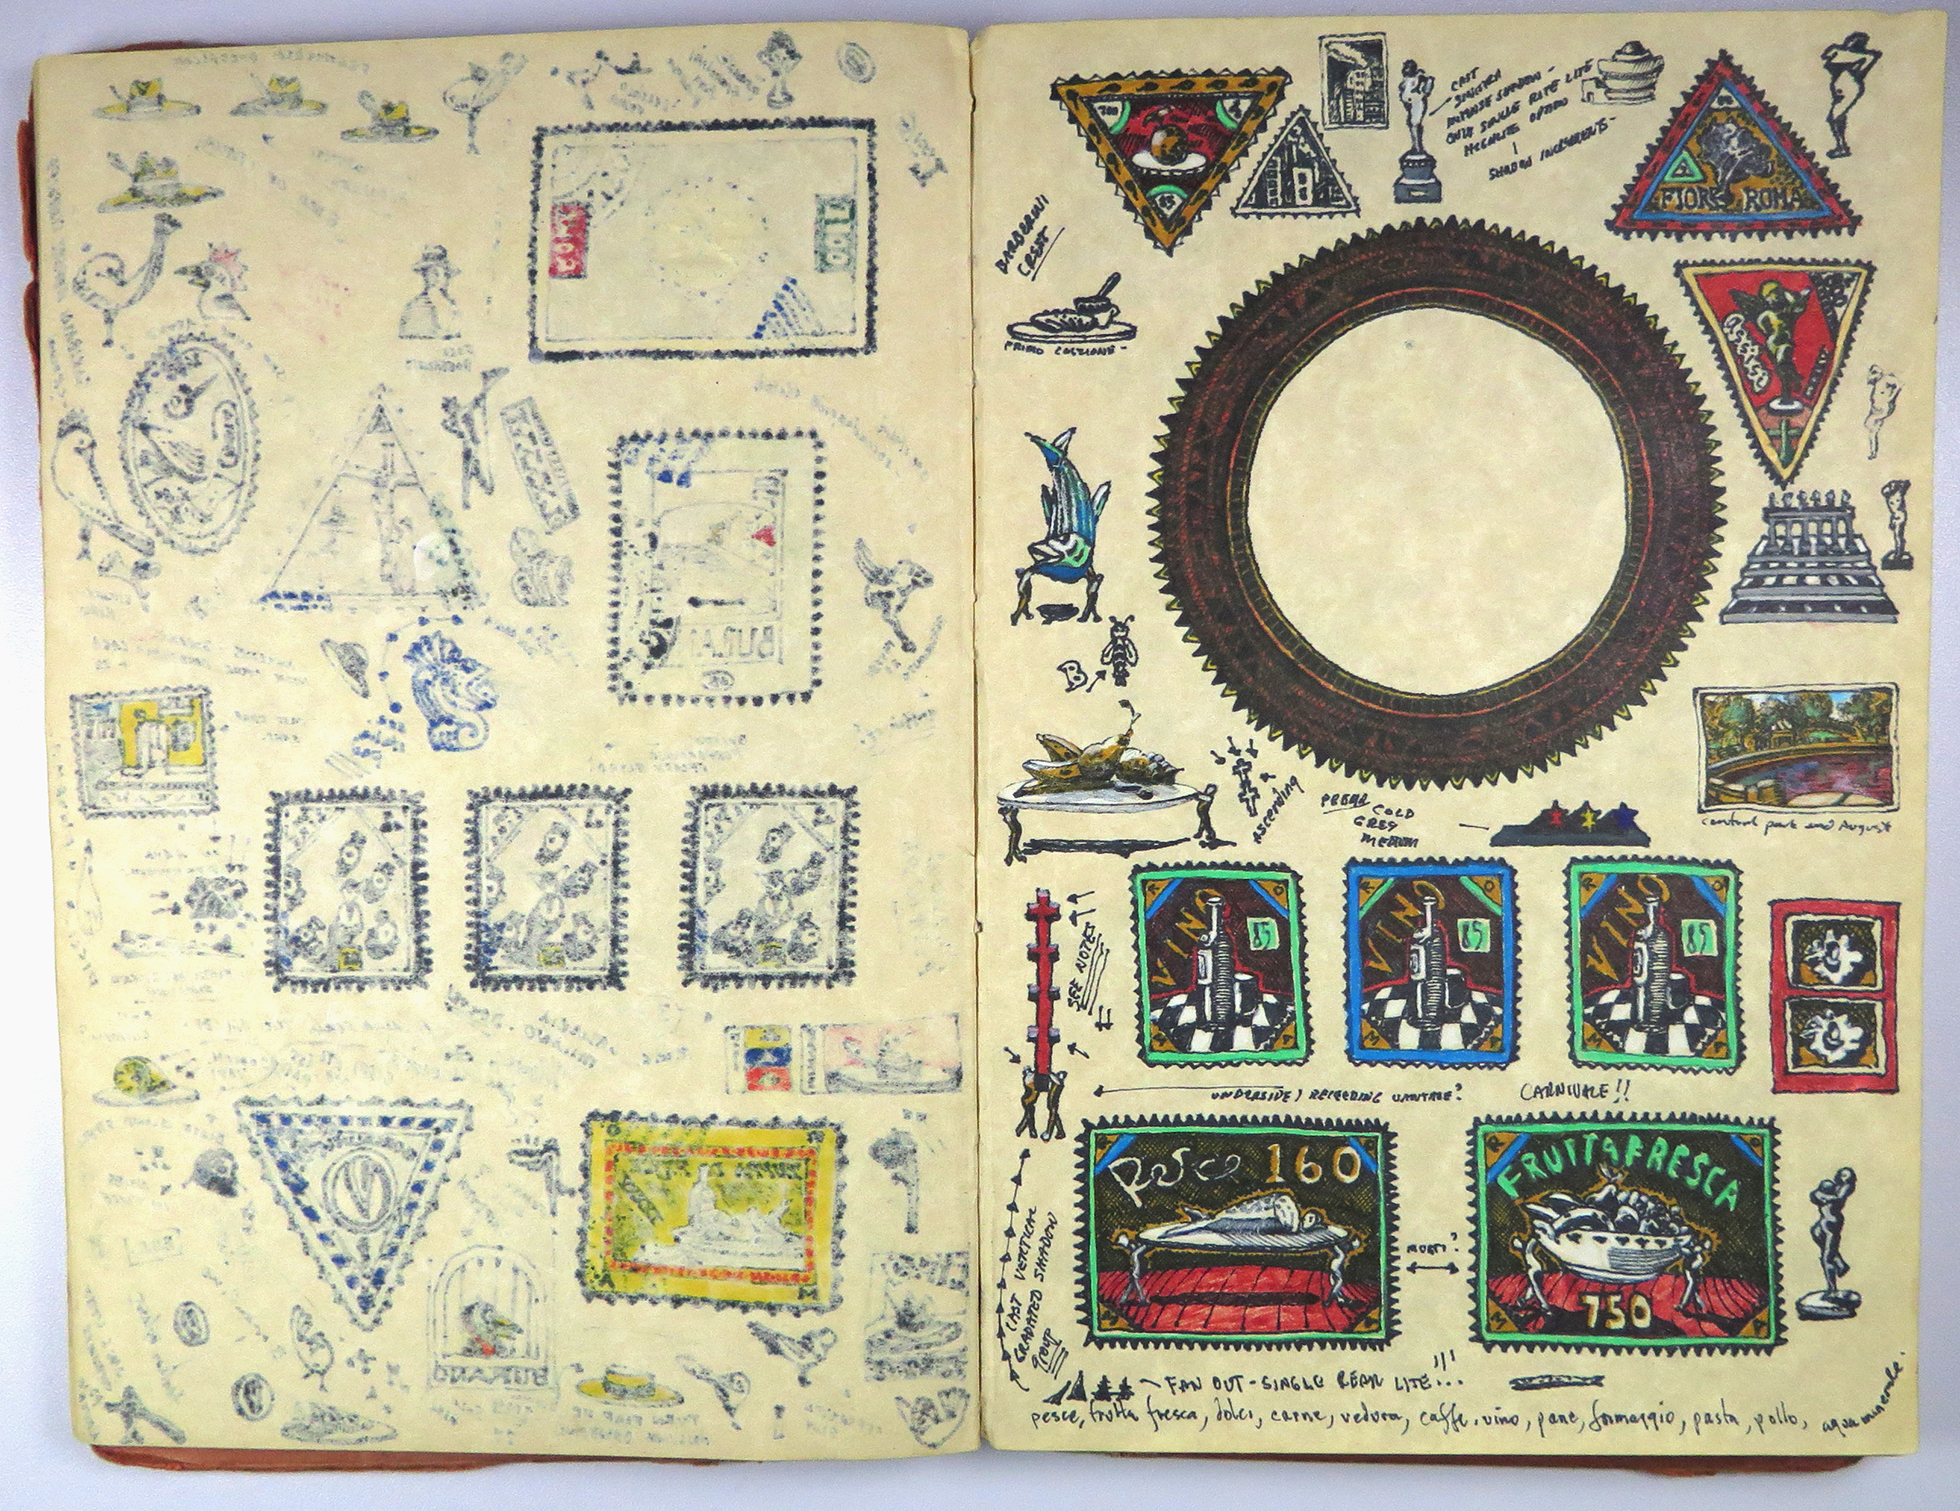 a notebook with old stamps and symbols